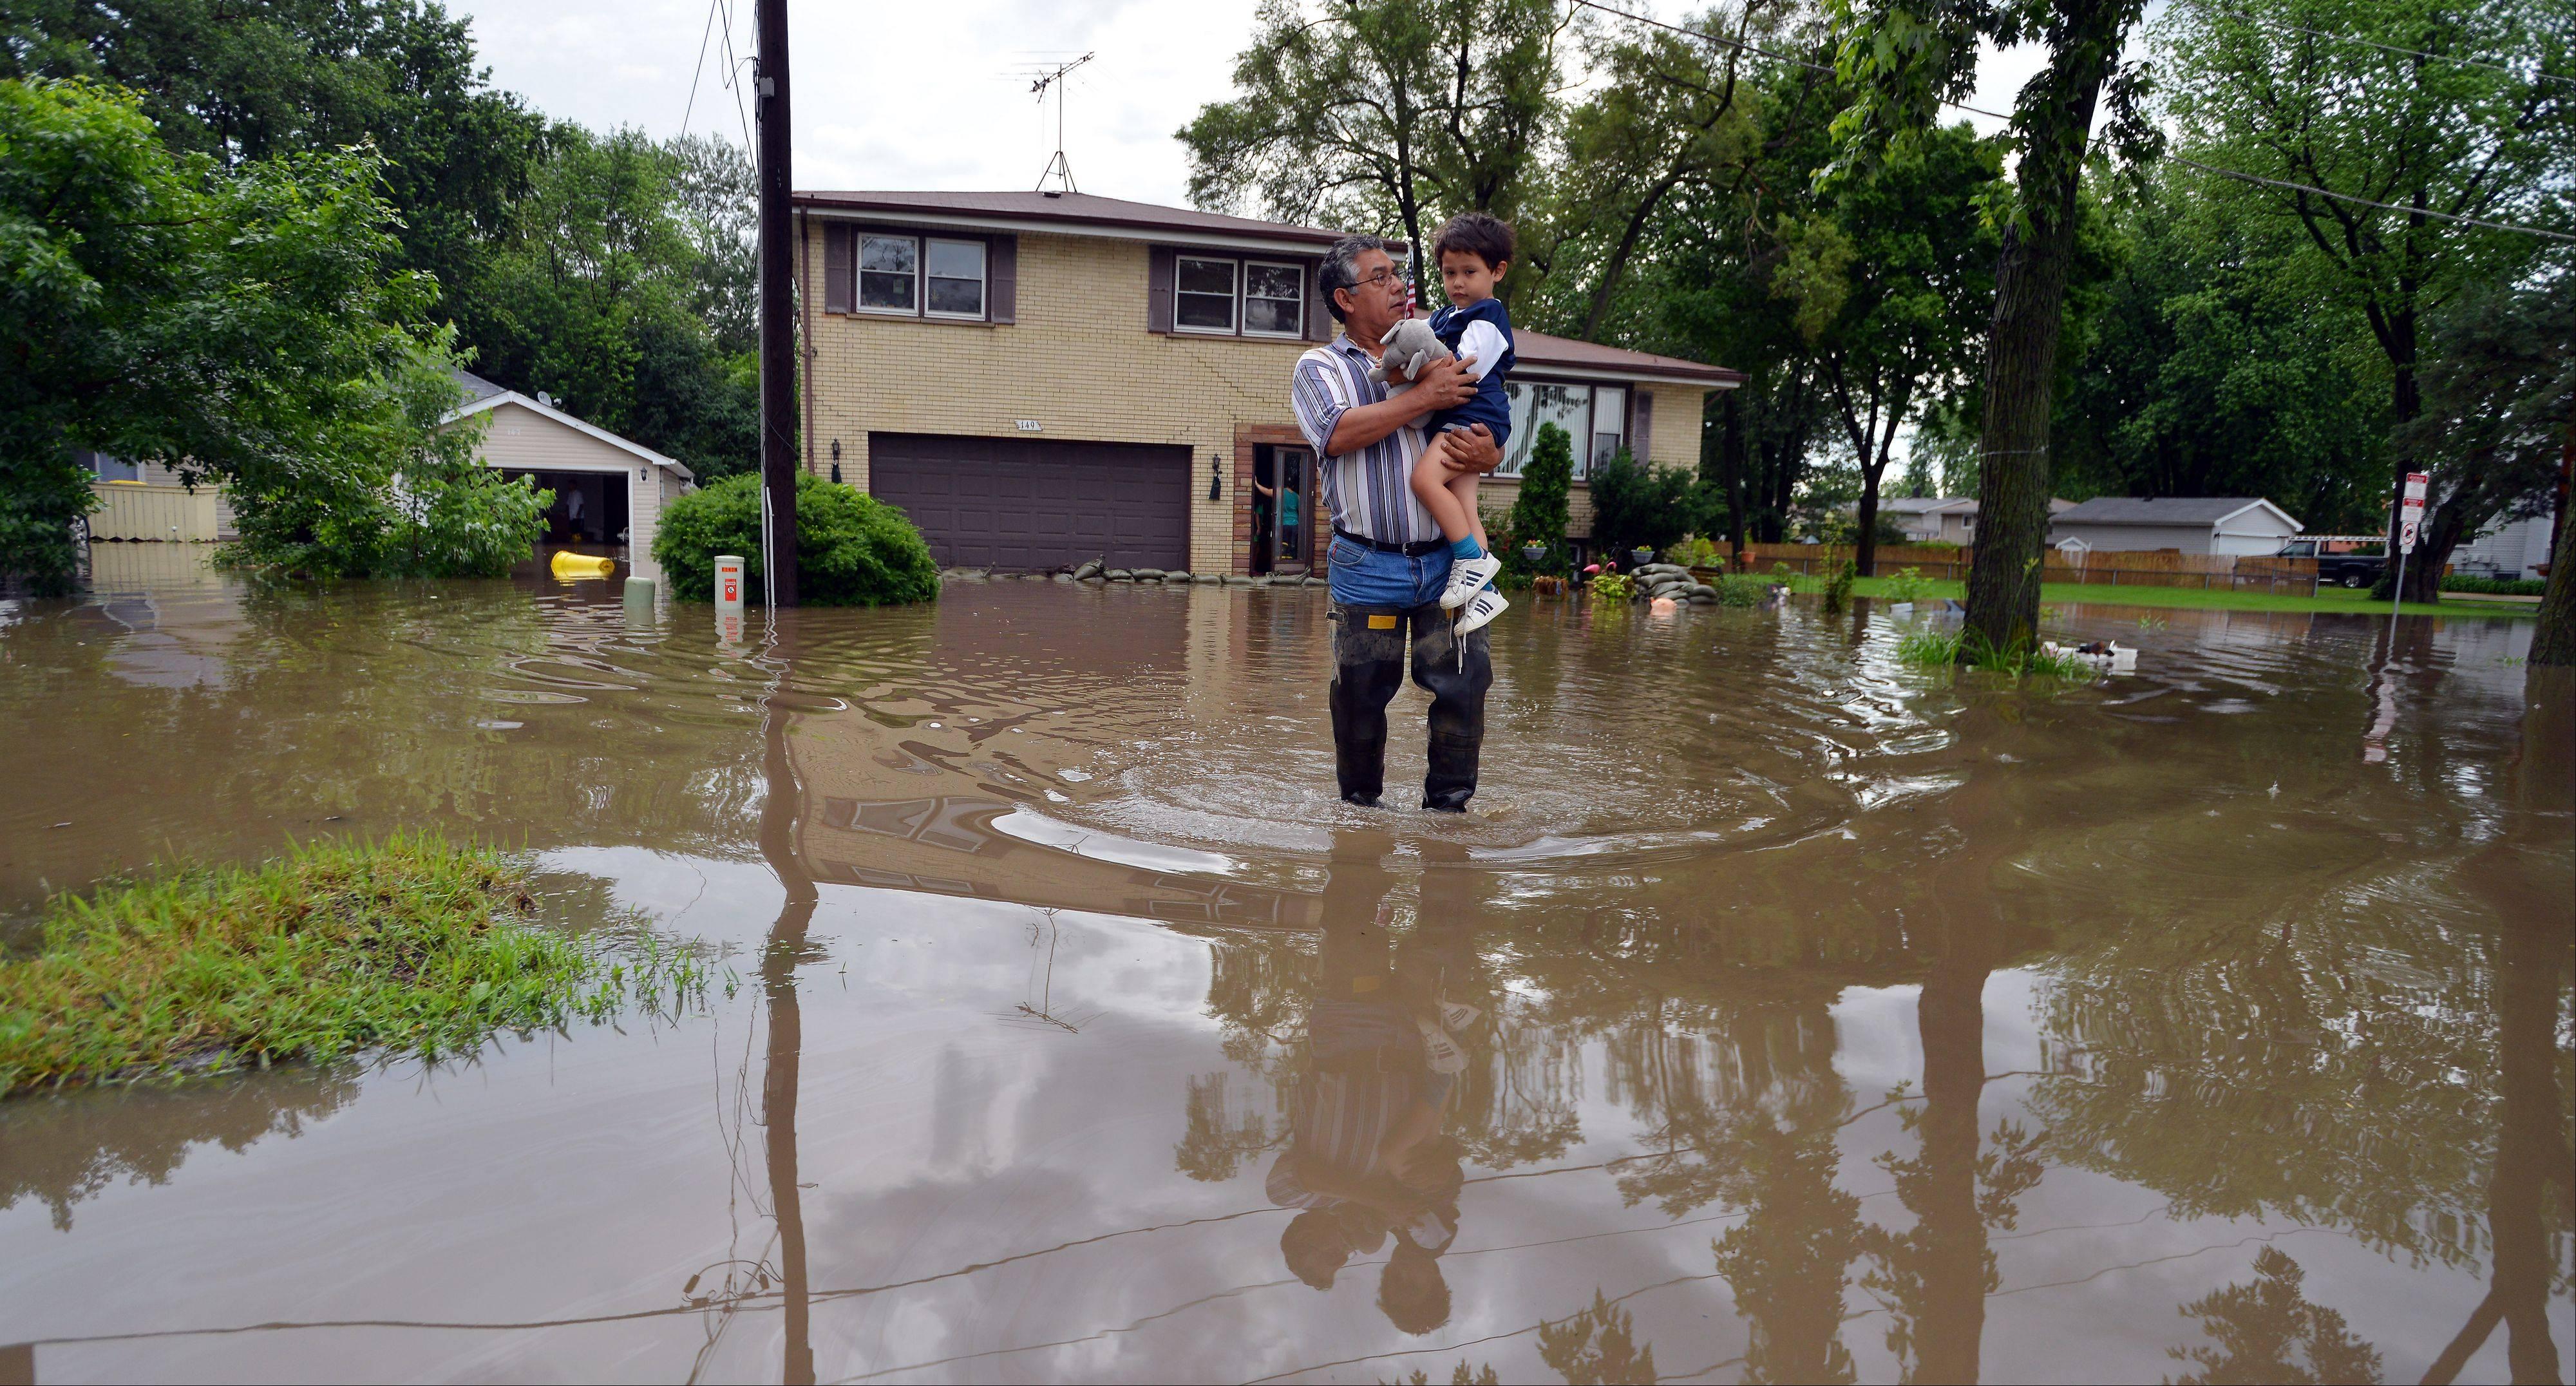 Juan Corona carries his grandson Felix Hernandez, four, from his flooded house which belongs to his daughter Alex Hernandez in Wheeling after storms dumped over five inches of water in a matter of hours. The house has over five feet of water in the basement and was still rising.